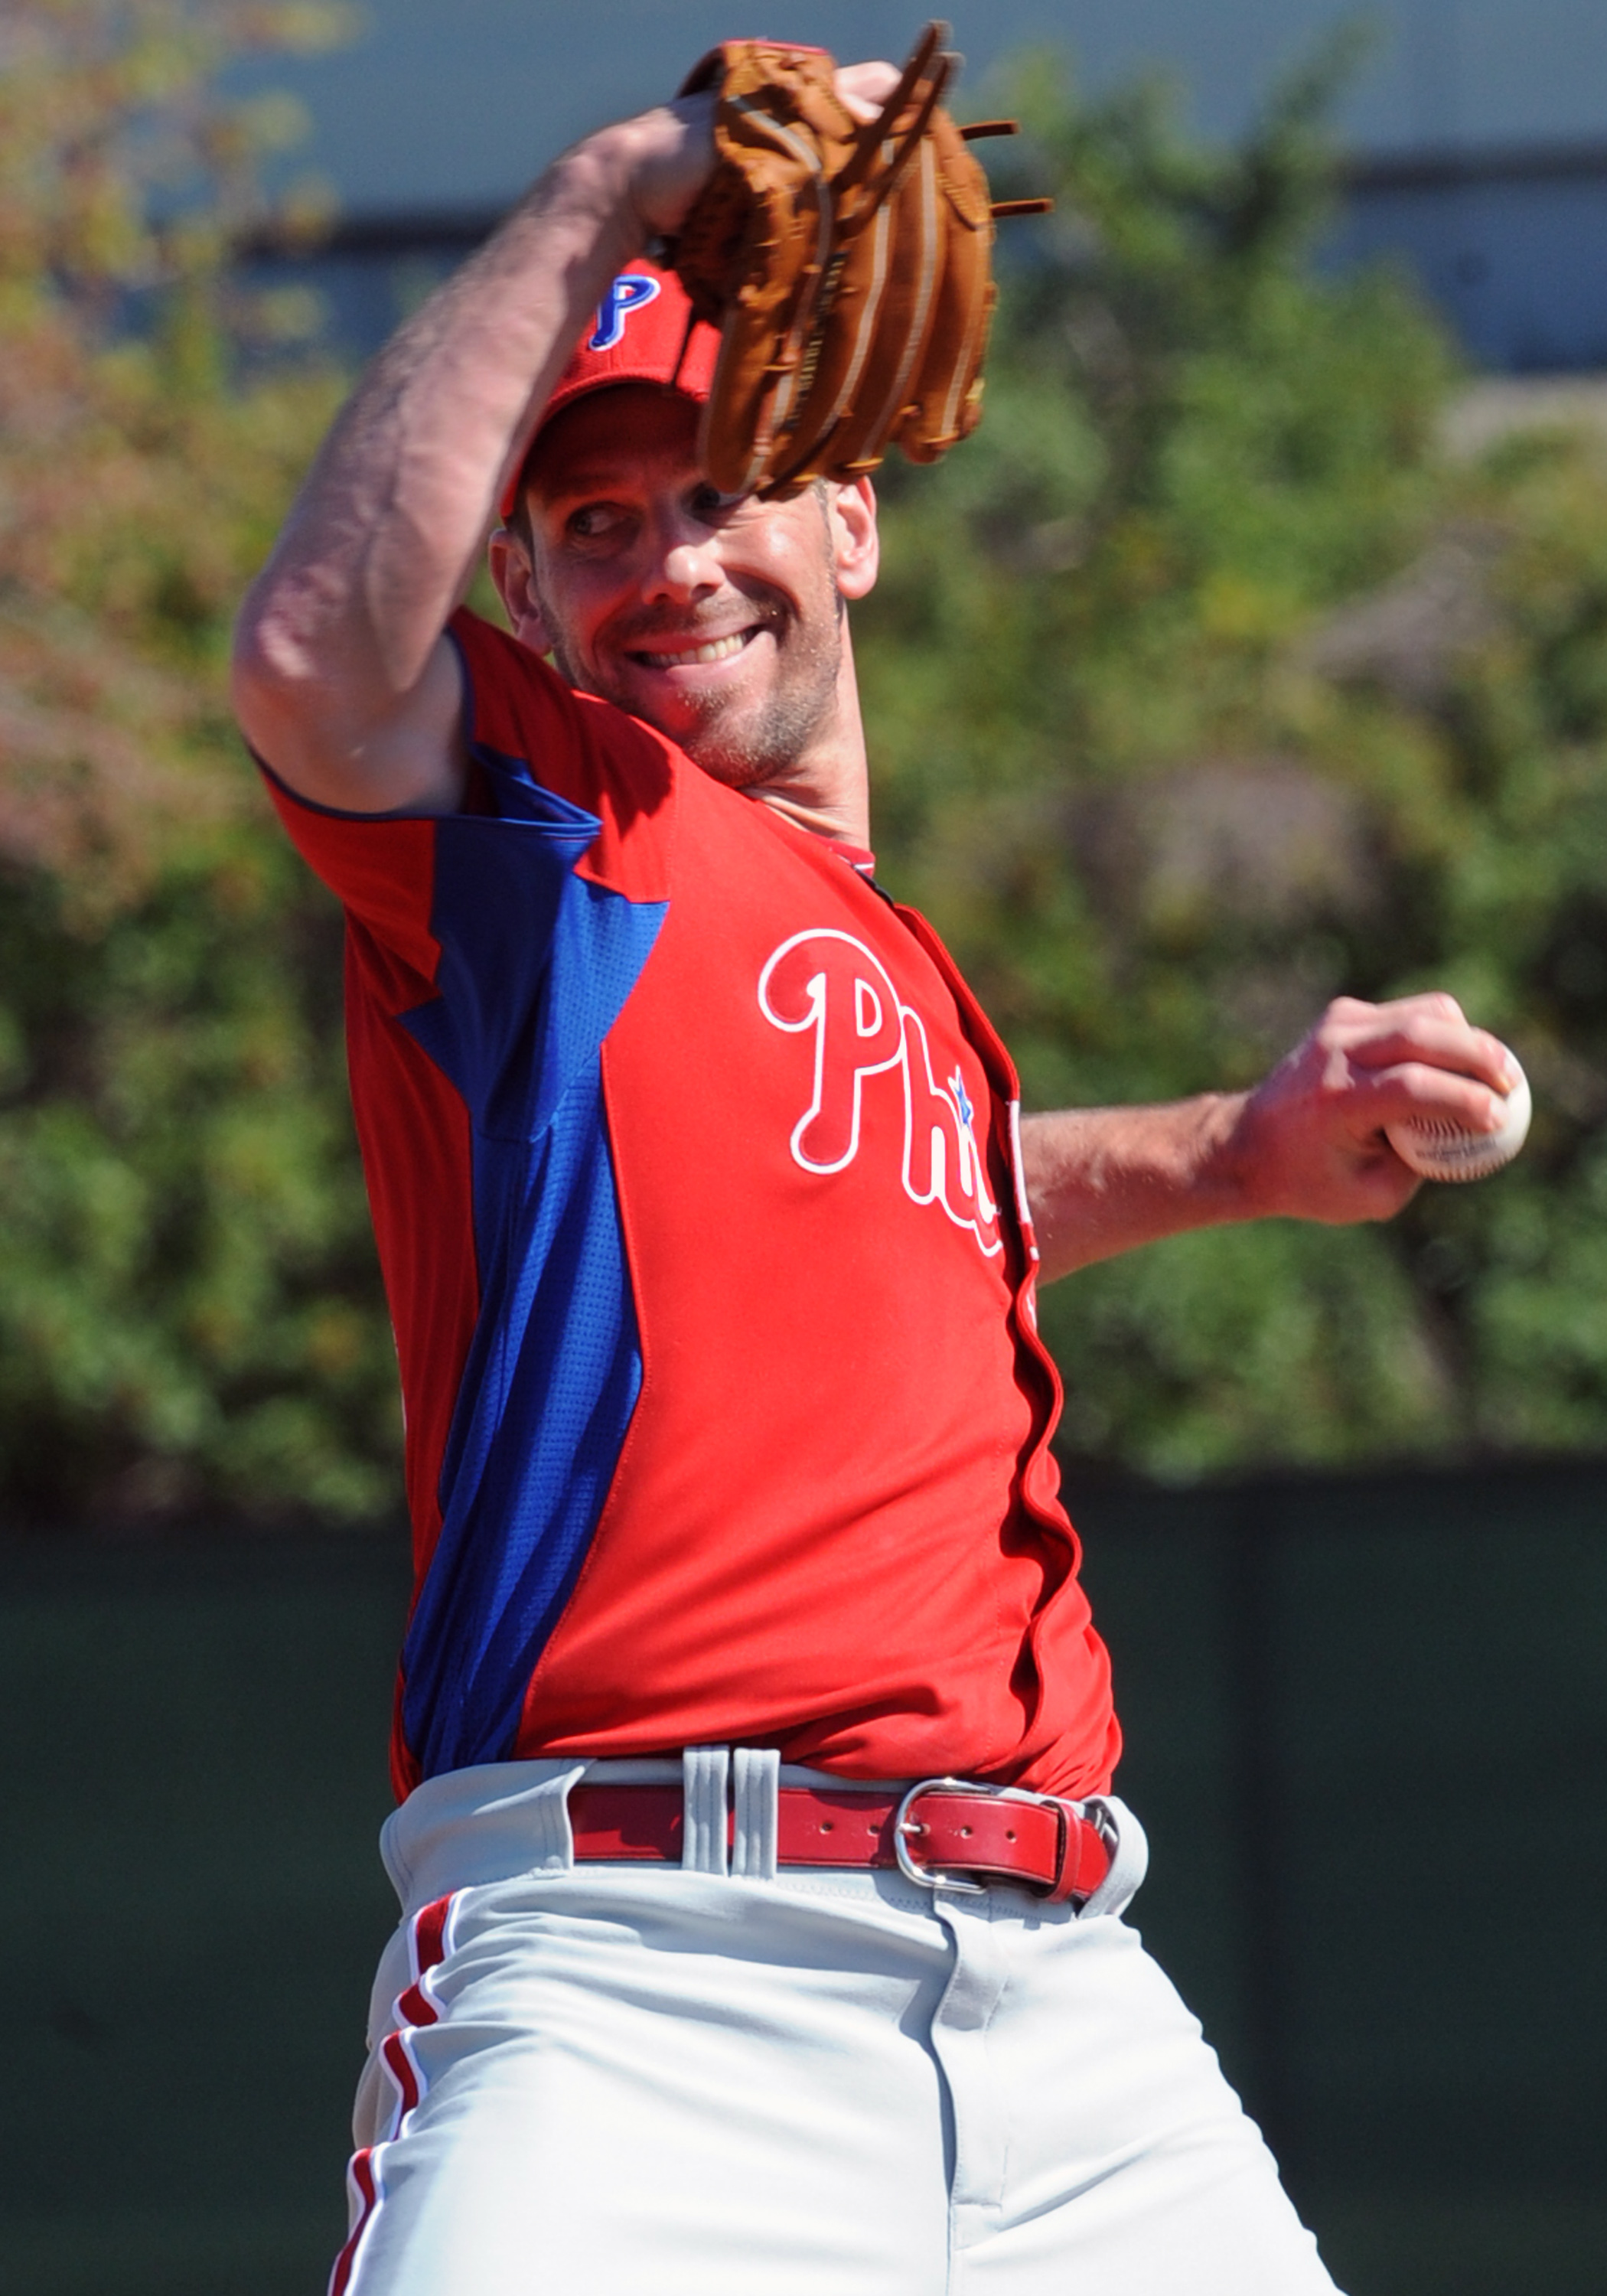 CLEARWATER, FL - FEBRUARY 19: Pitcher Cliff Lee #33 of the Philadelphia Phillies throws from the mound during a spring training workout February 19, 2011 the Carpenter Complex at Bright House Field in Clearwater, Florida. (Photo by Al Messerschmidt/Getty